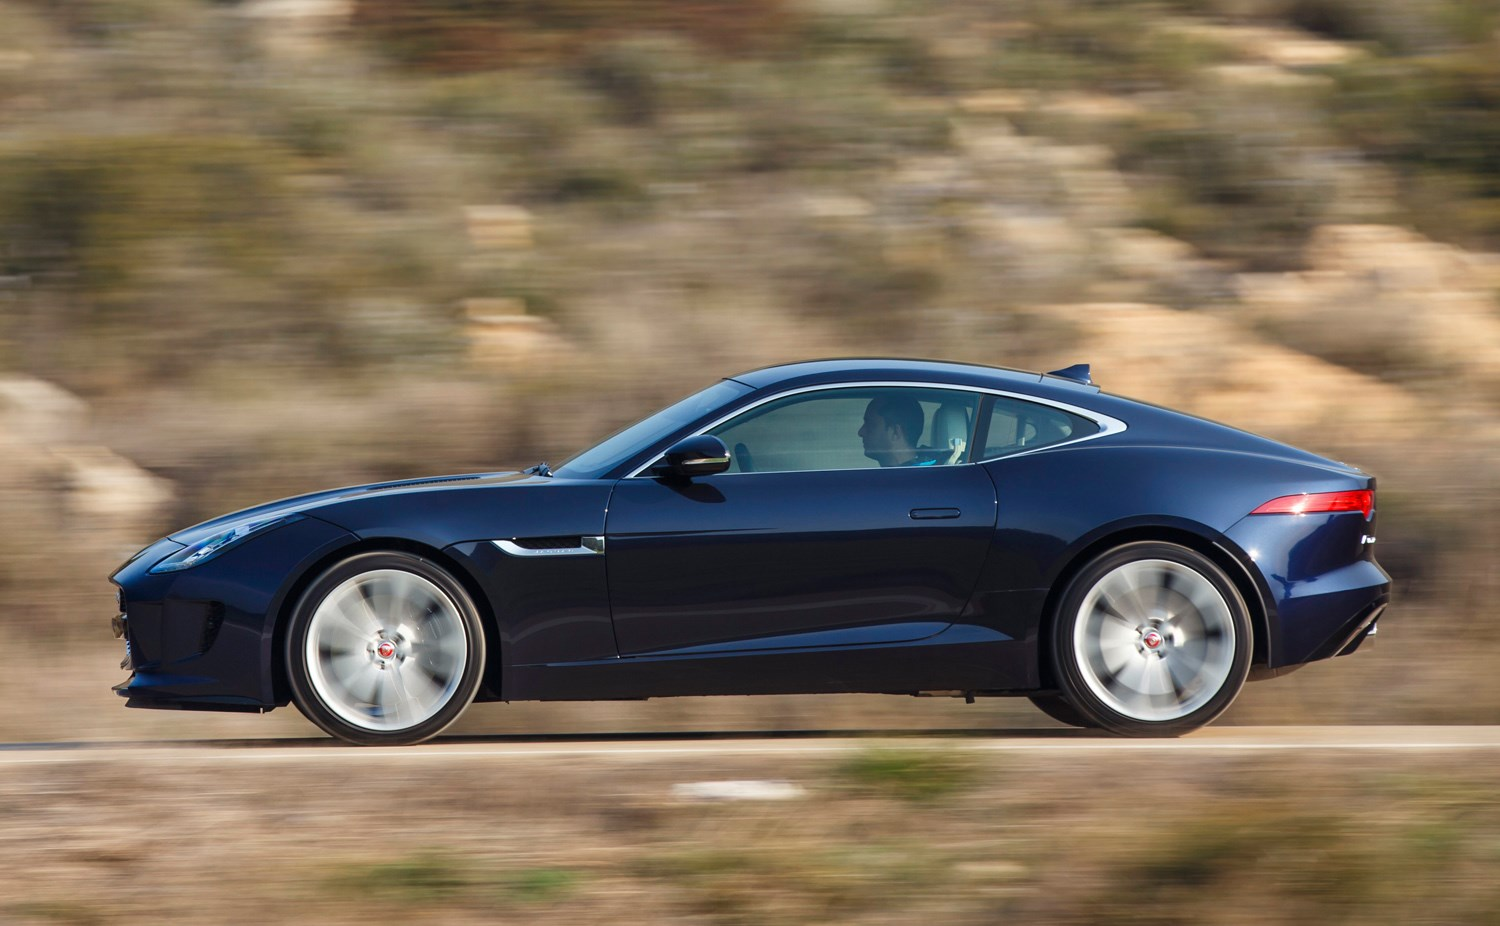 Audi tt 2014 coupe images amp pictures becuo - 2017 Jaguar F Type Coupe Release Date 2016 2017 Best Cars